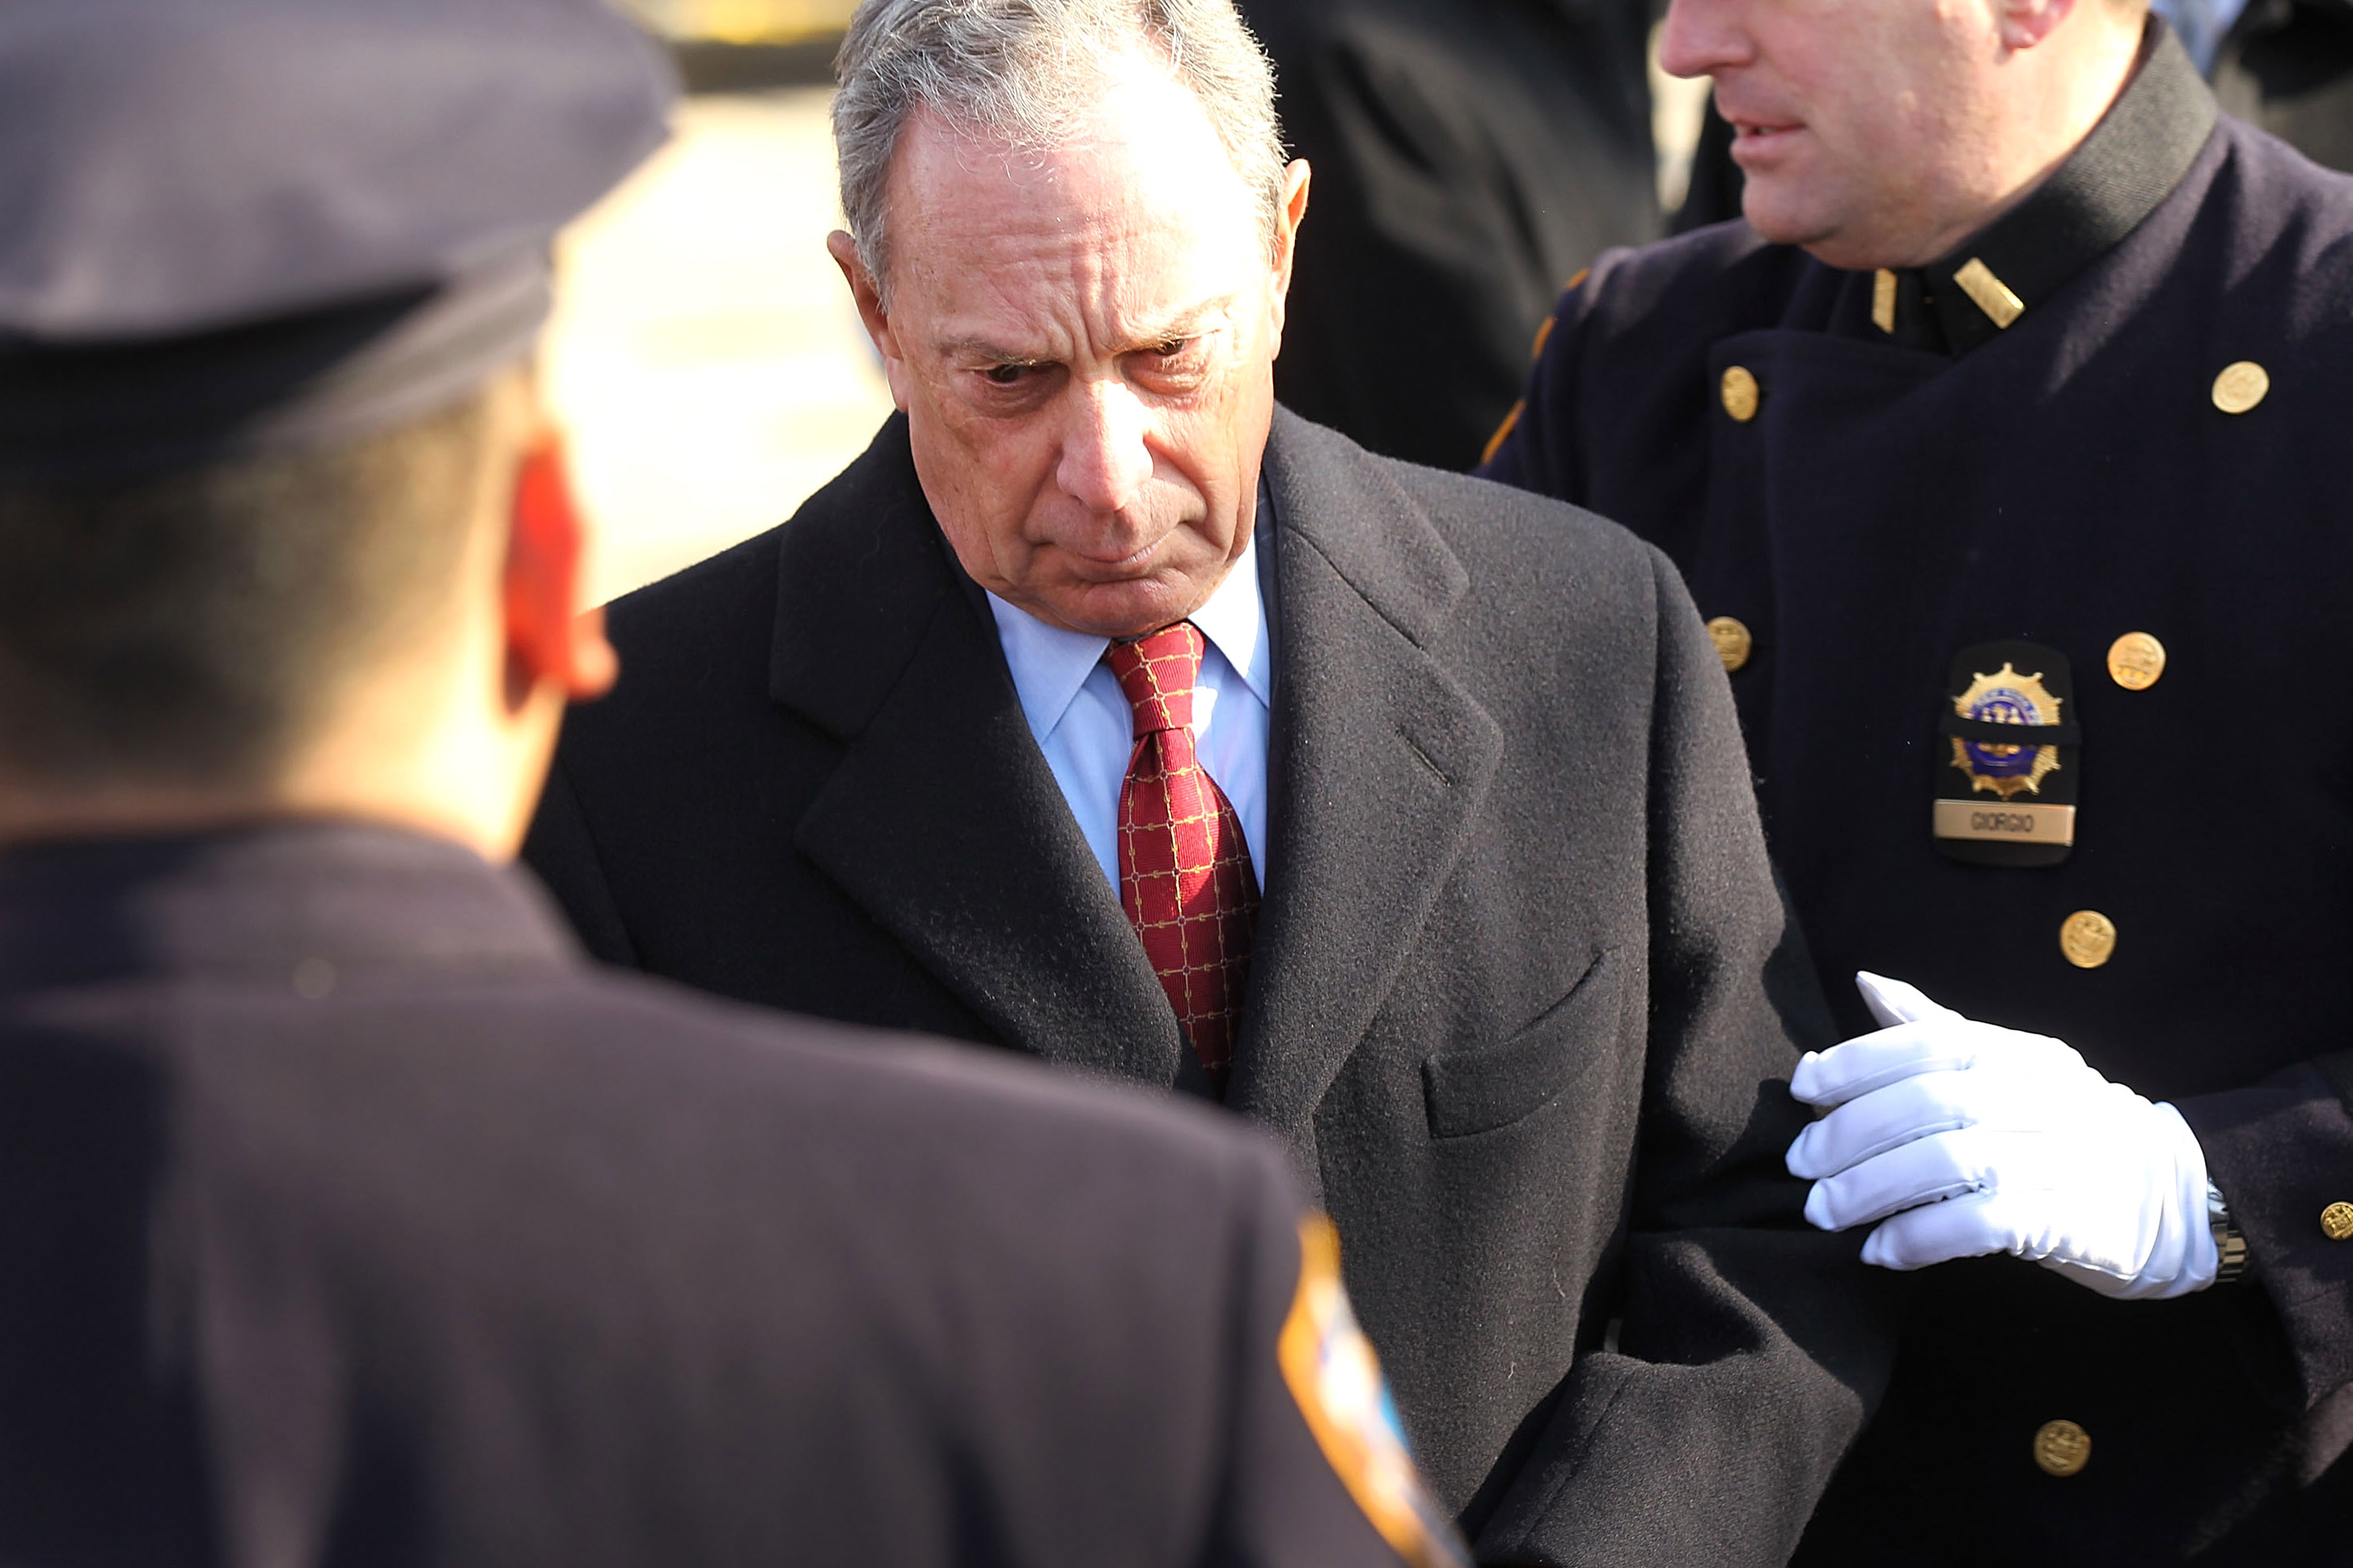 Bloomberg Giving Nypd Bodyguards Jobs To Keep Their Mouths Shut